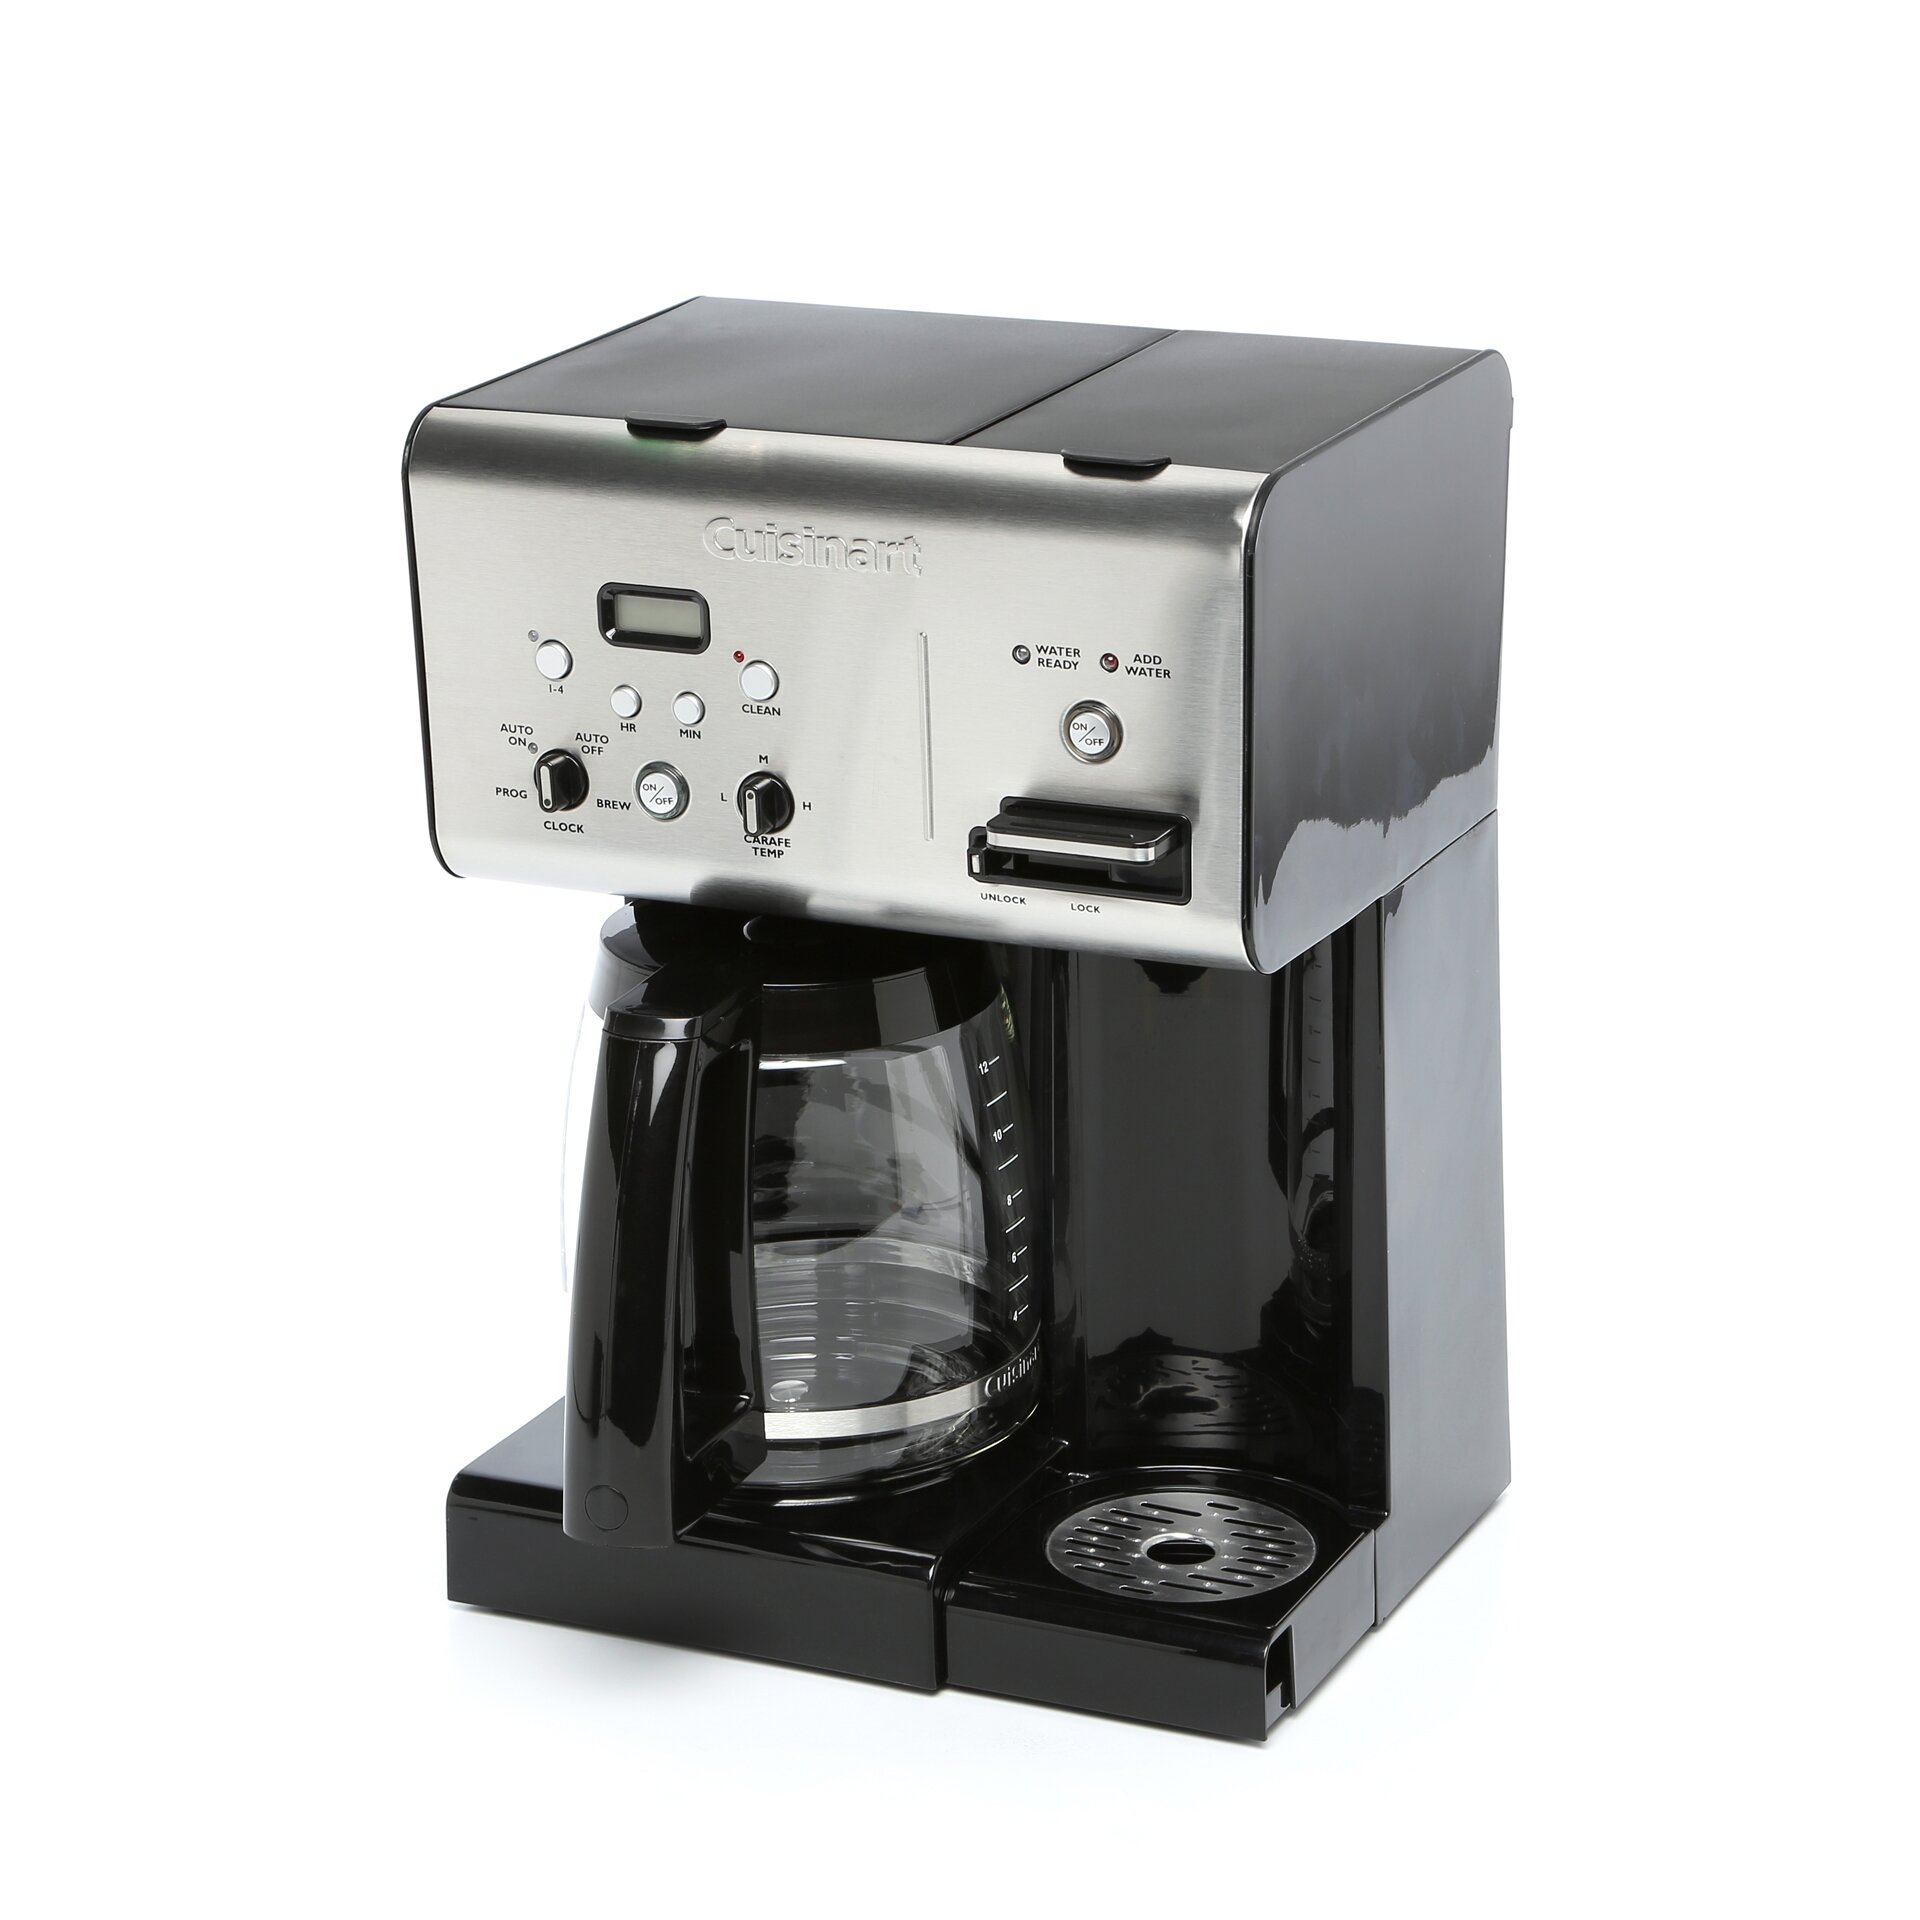 Cuisinart Programmable 12 Cup Coffee Maker With Hot Water